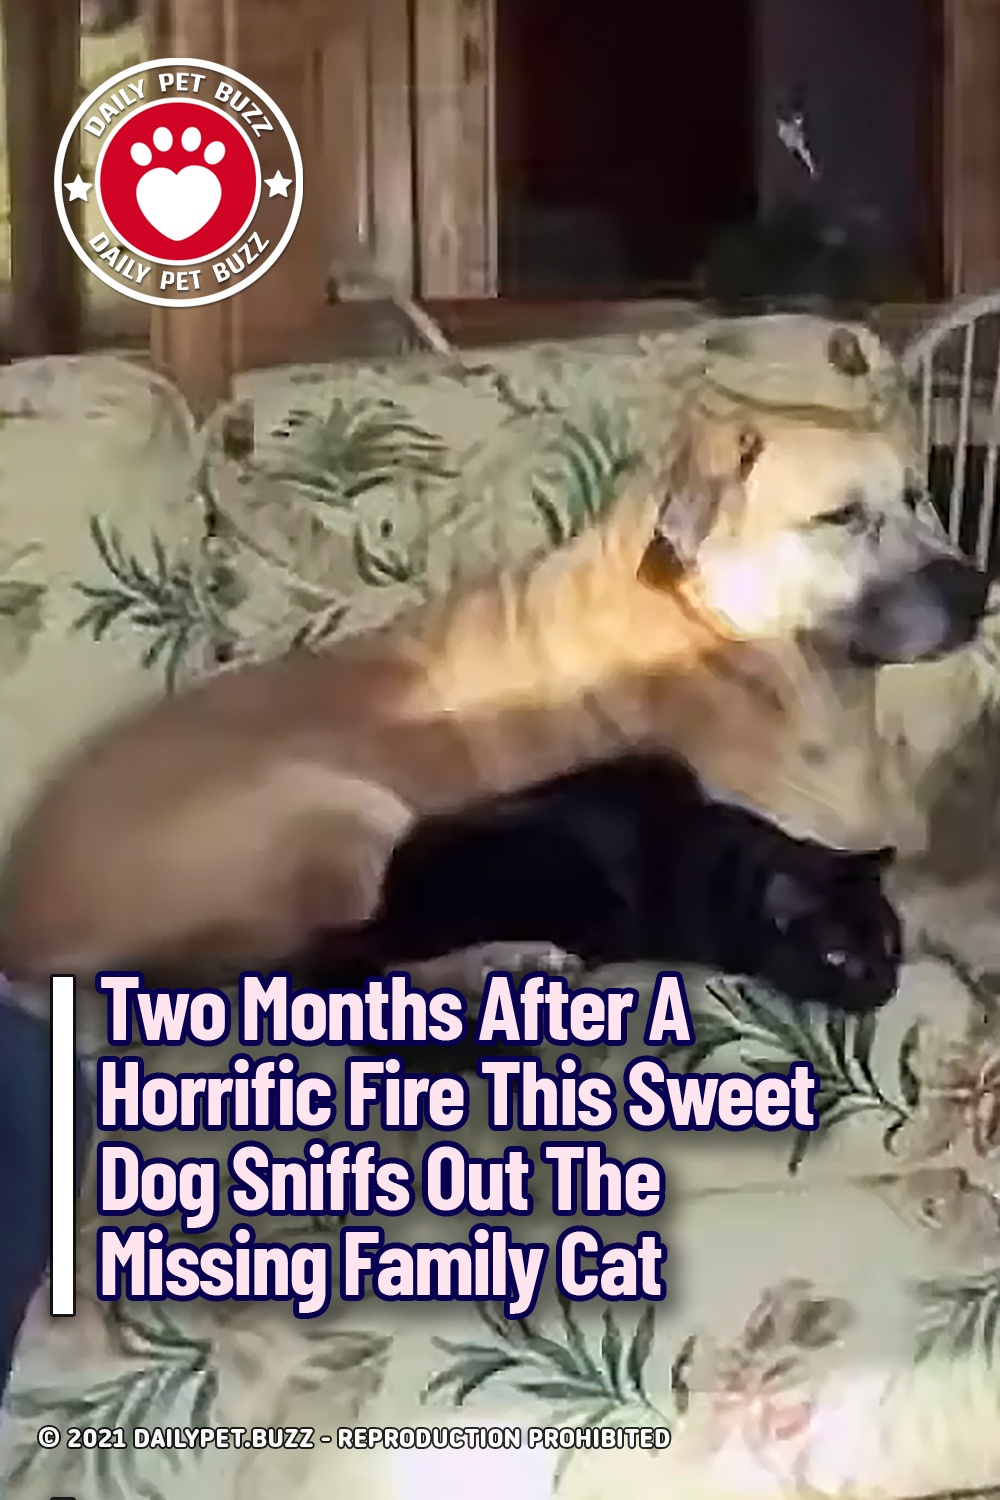 Two Months After A Horrific Fire This Sweet Dog Sniffs Out The Missing Family Cat